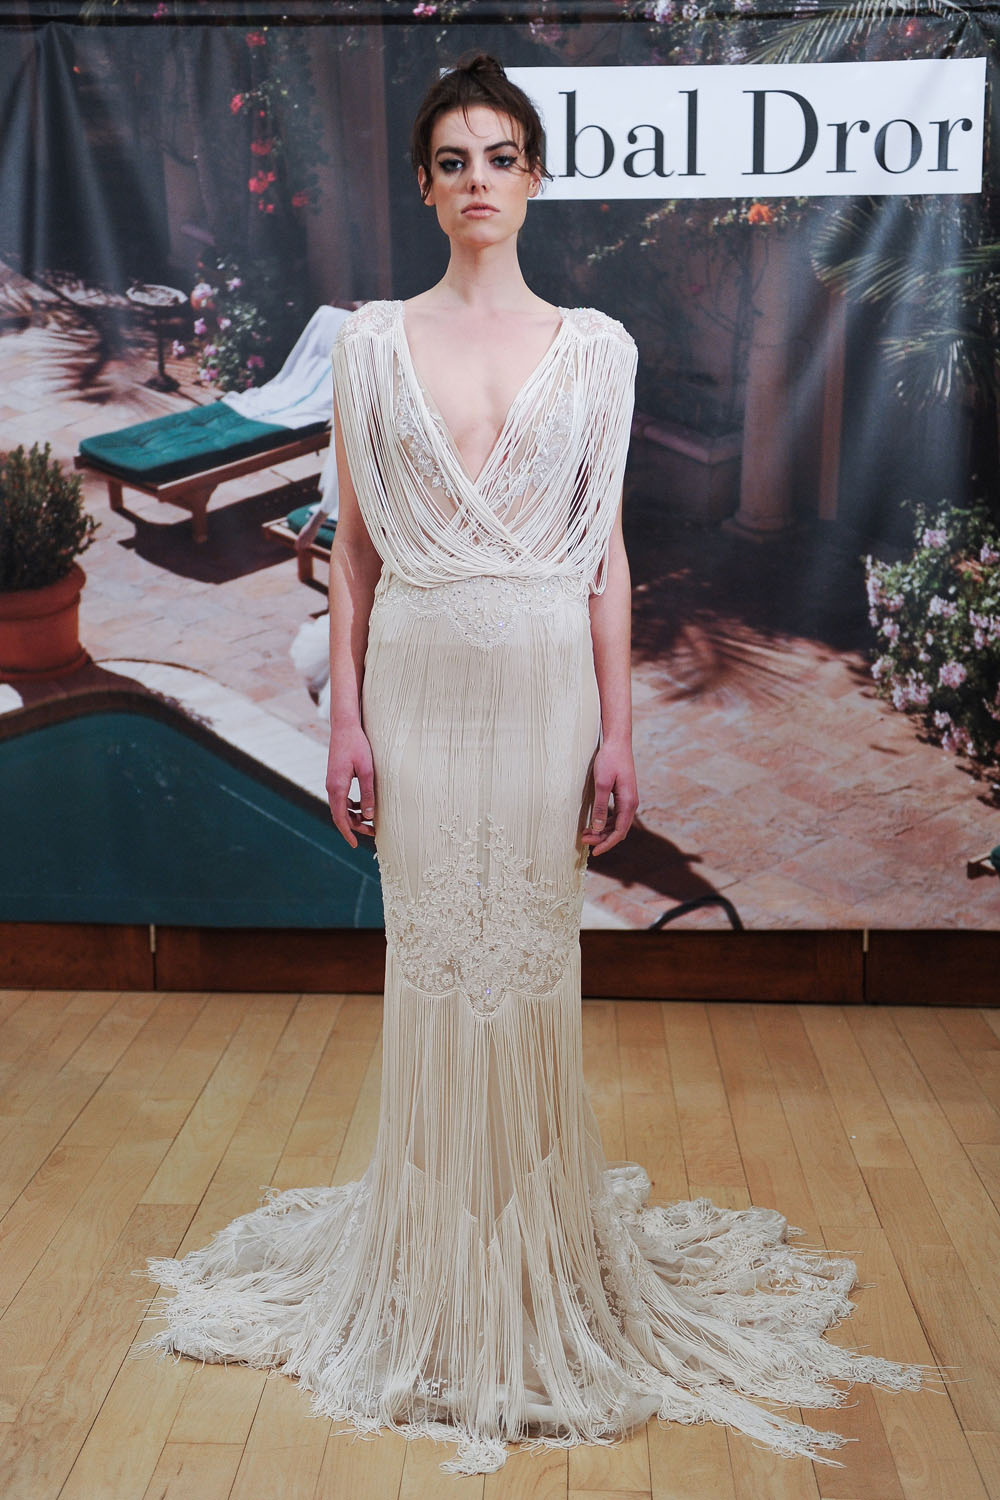 inbal-dror-spring-2015-wedding-dresses-209.jpg